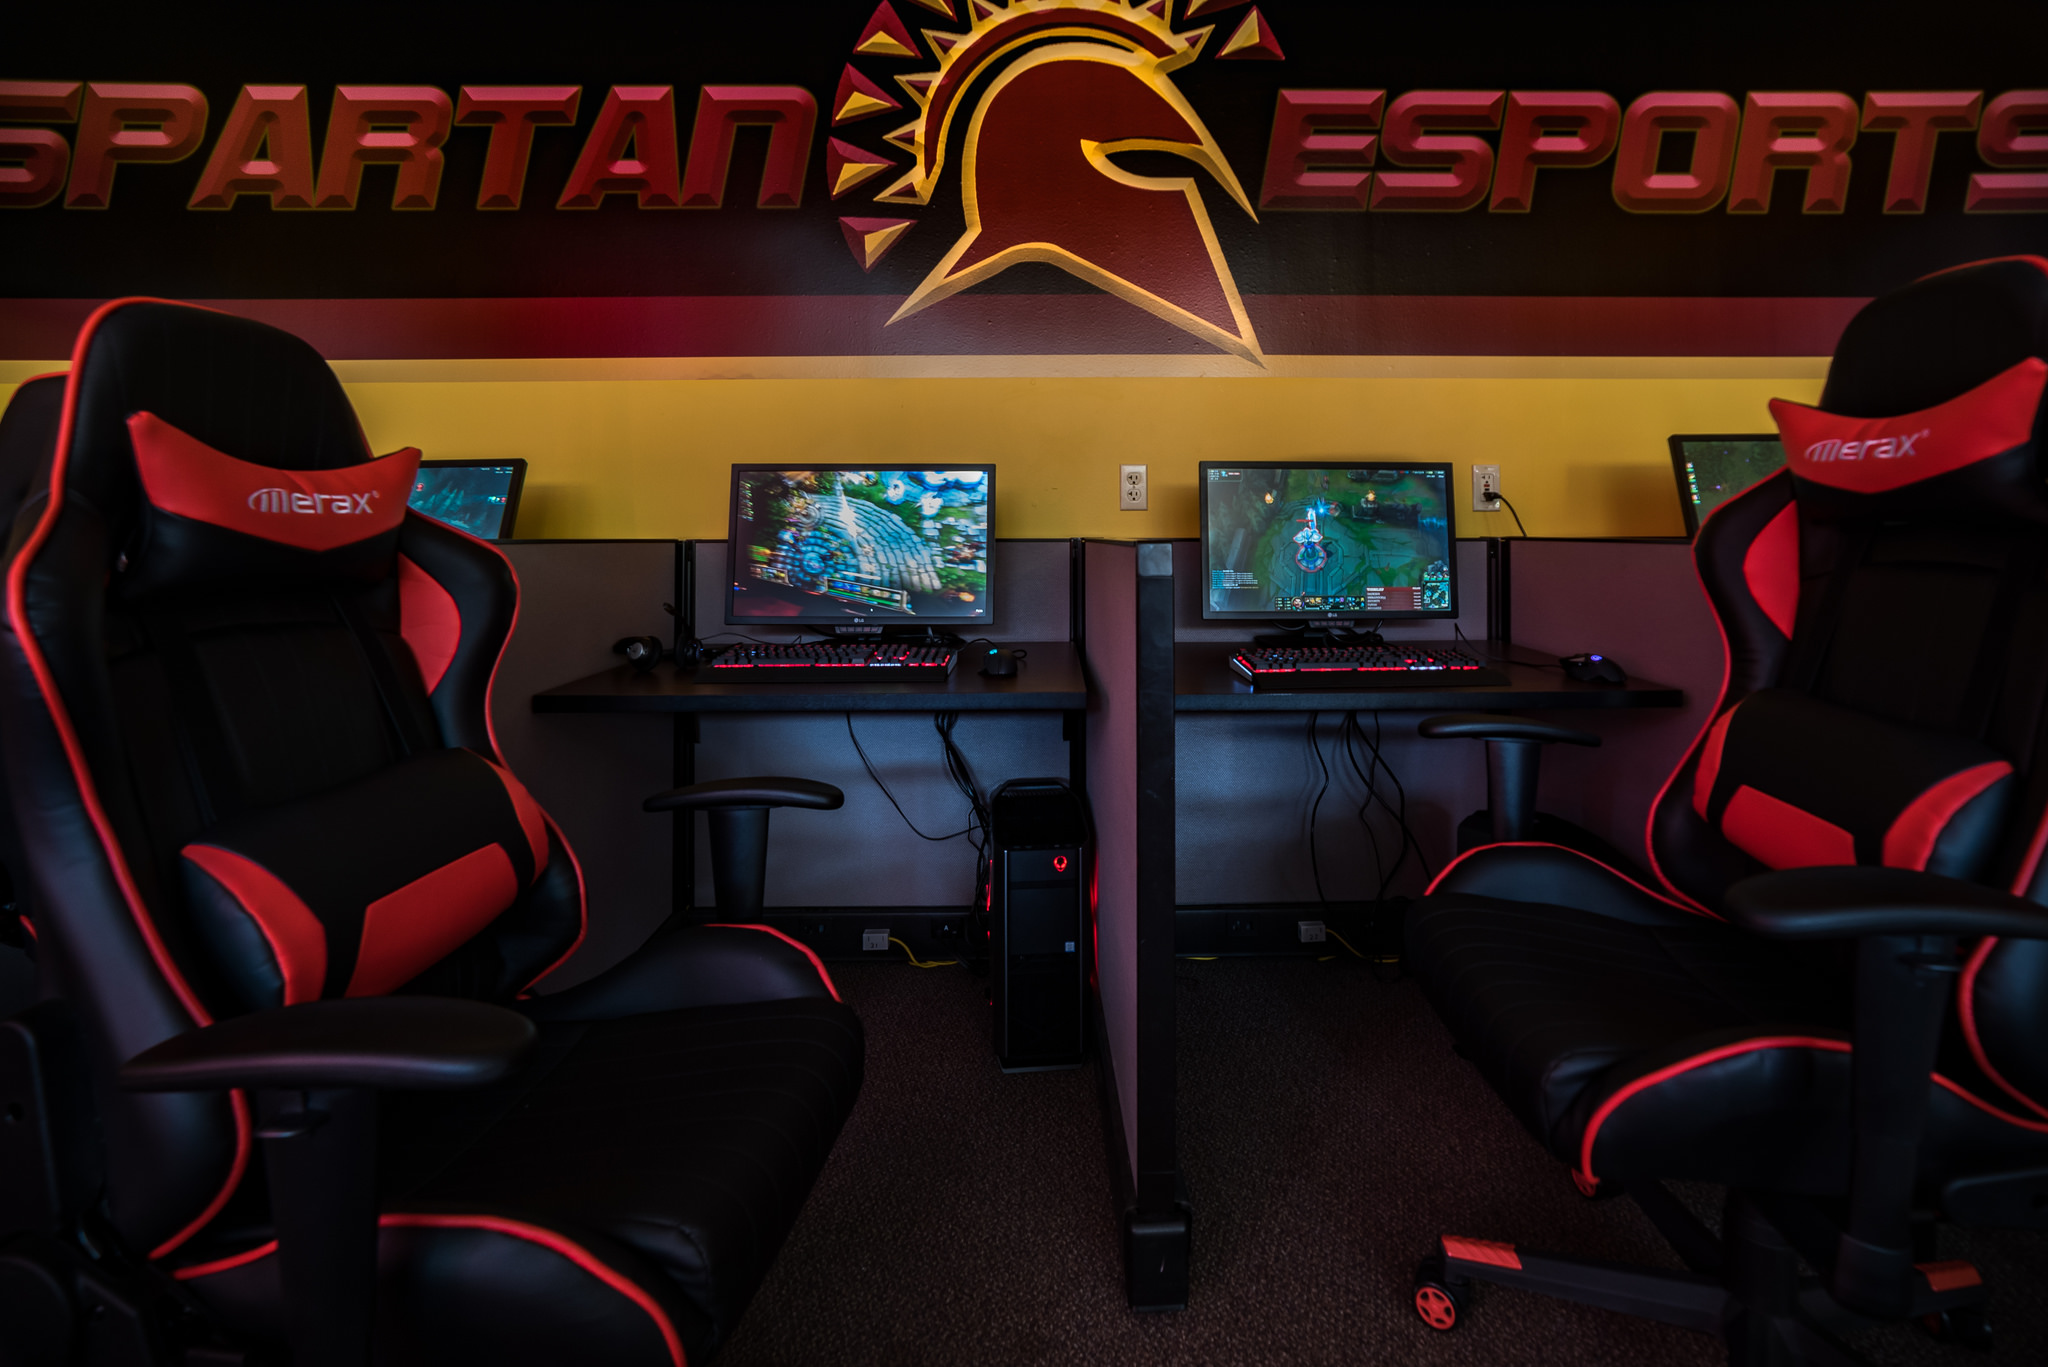 The new Spartan eSports zone